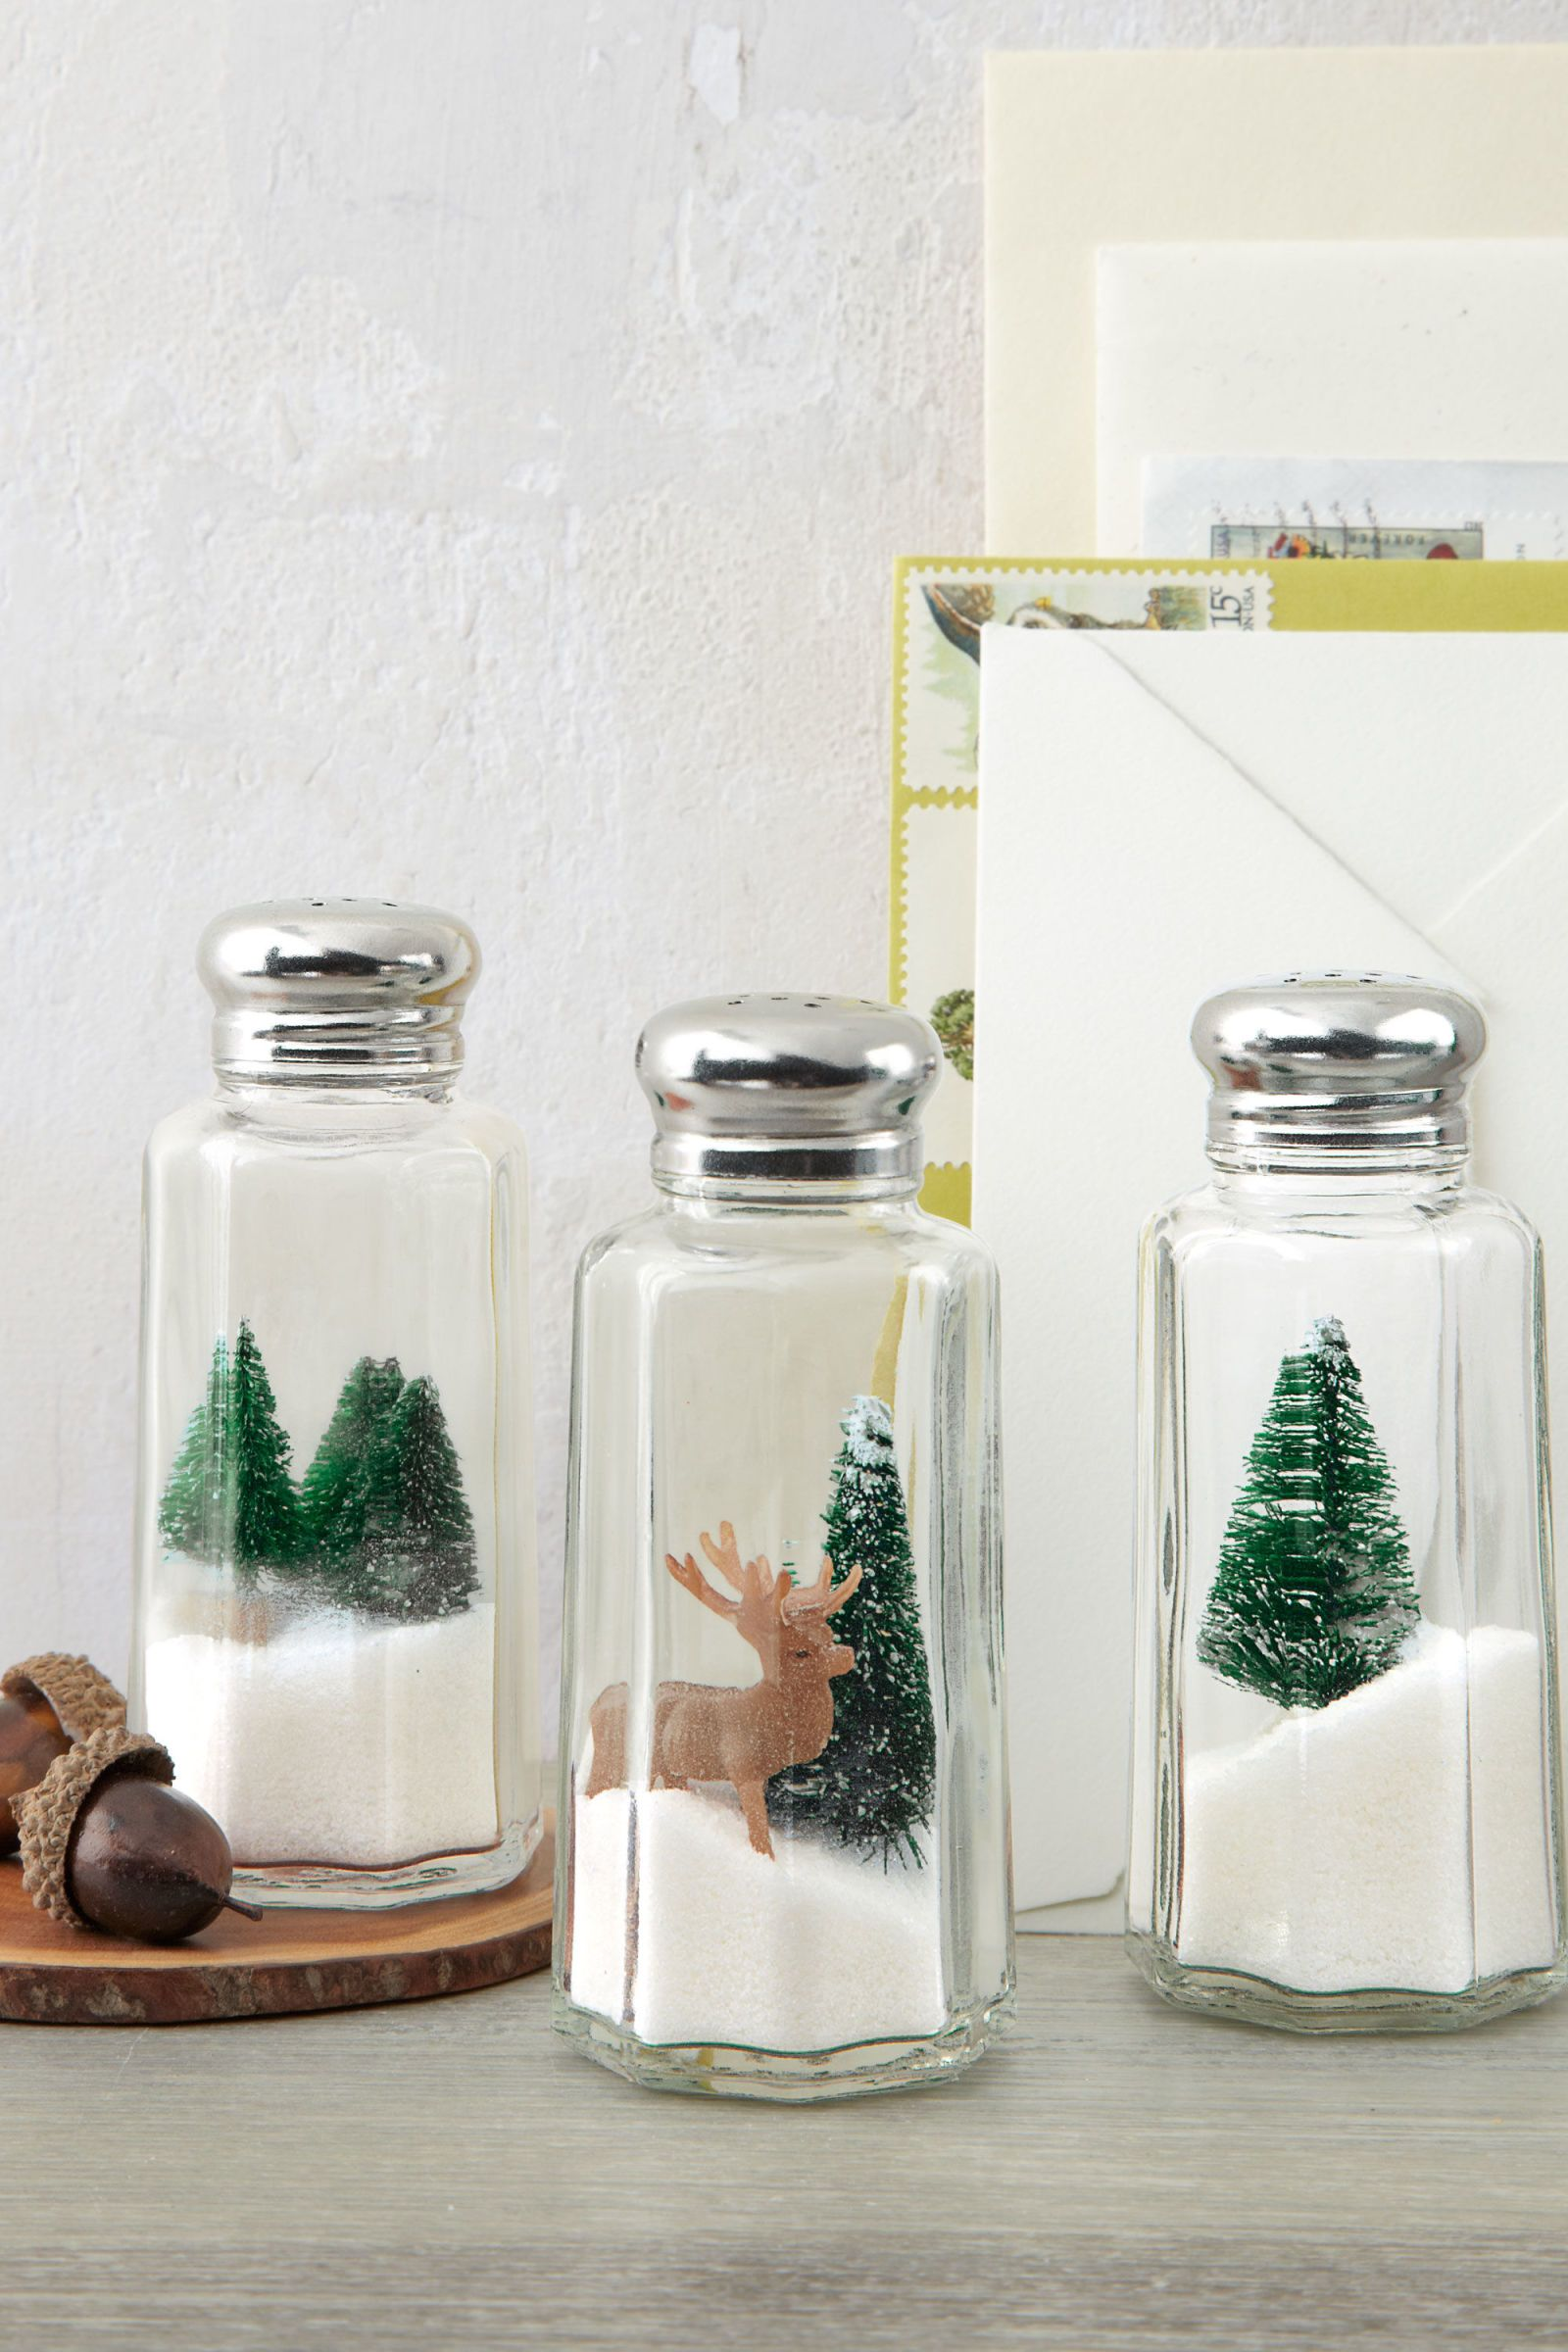 5 Homemade Christmas Decorations To Make Your Home Brighter! 3